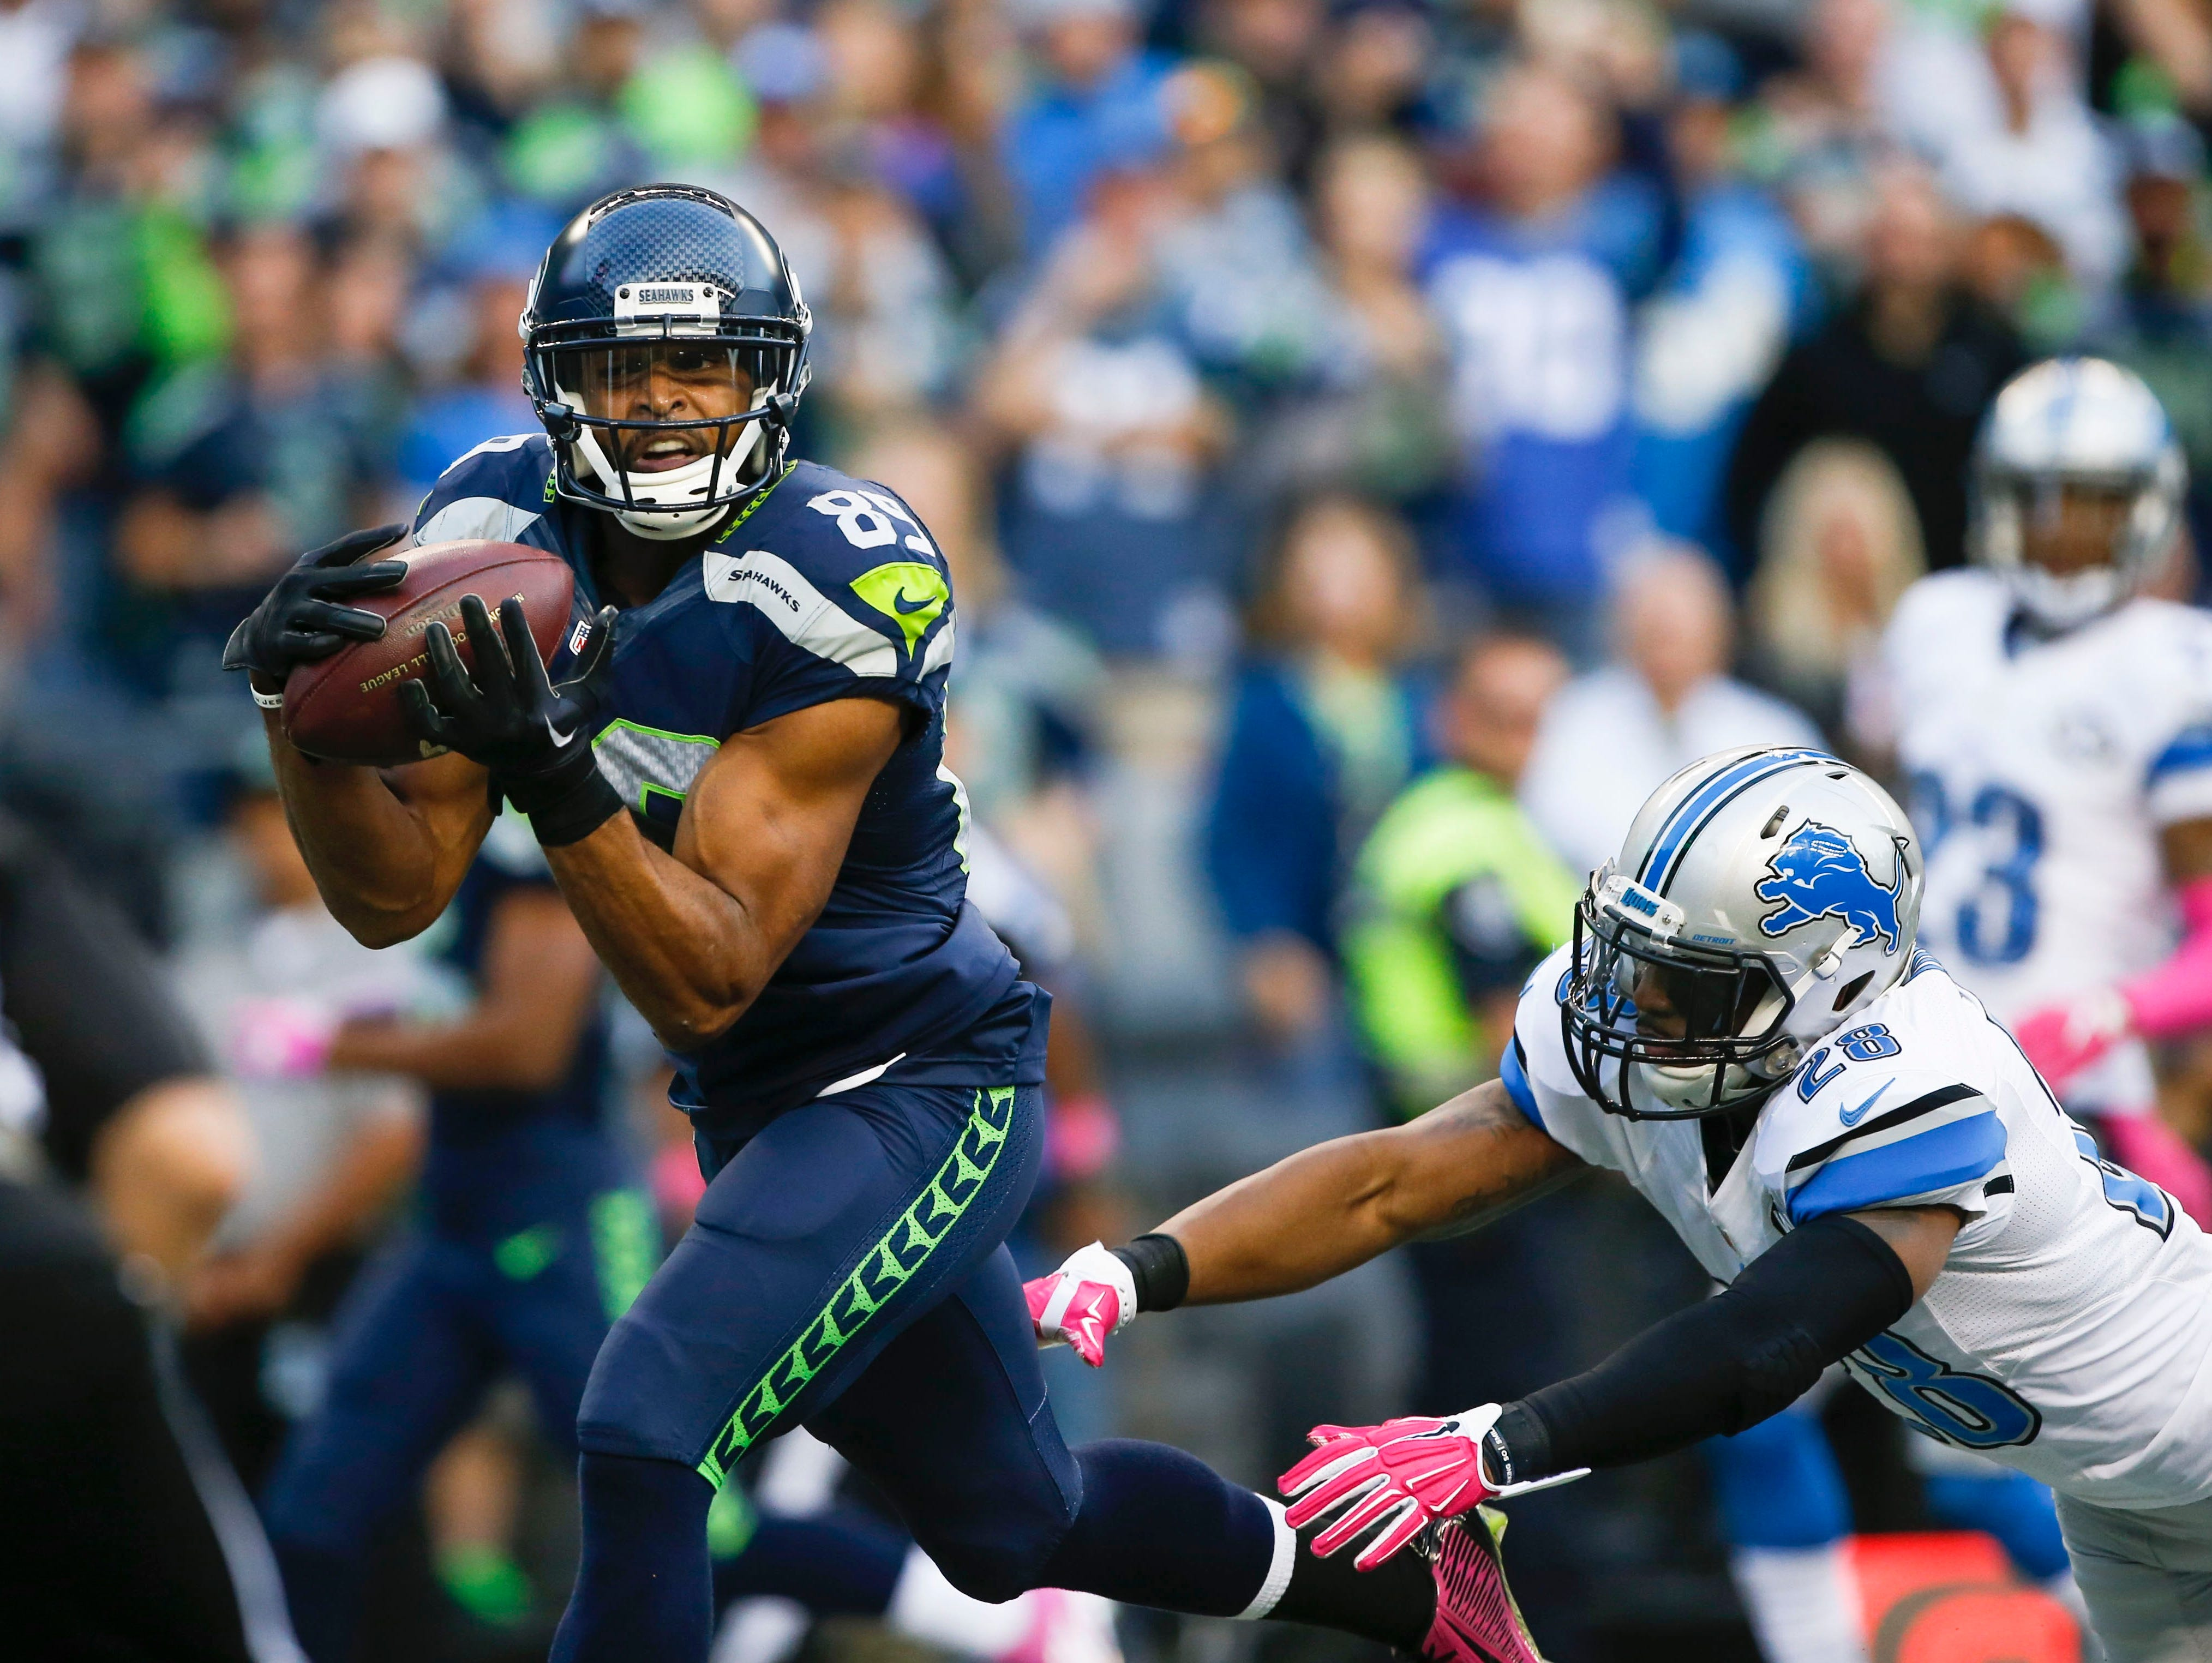 Seahawks receiver Doug Baldwin (89) hauls in a second-quarter TD catch behind Lions cornerback Quandre Diggs (28).